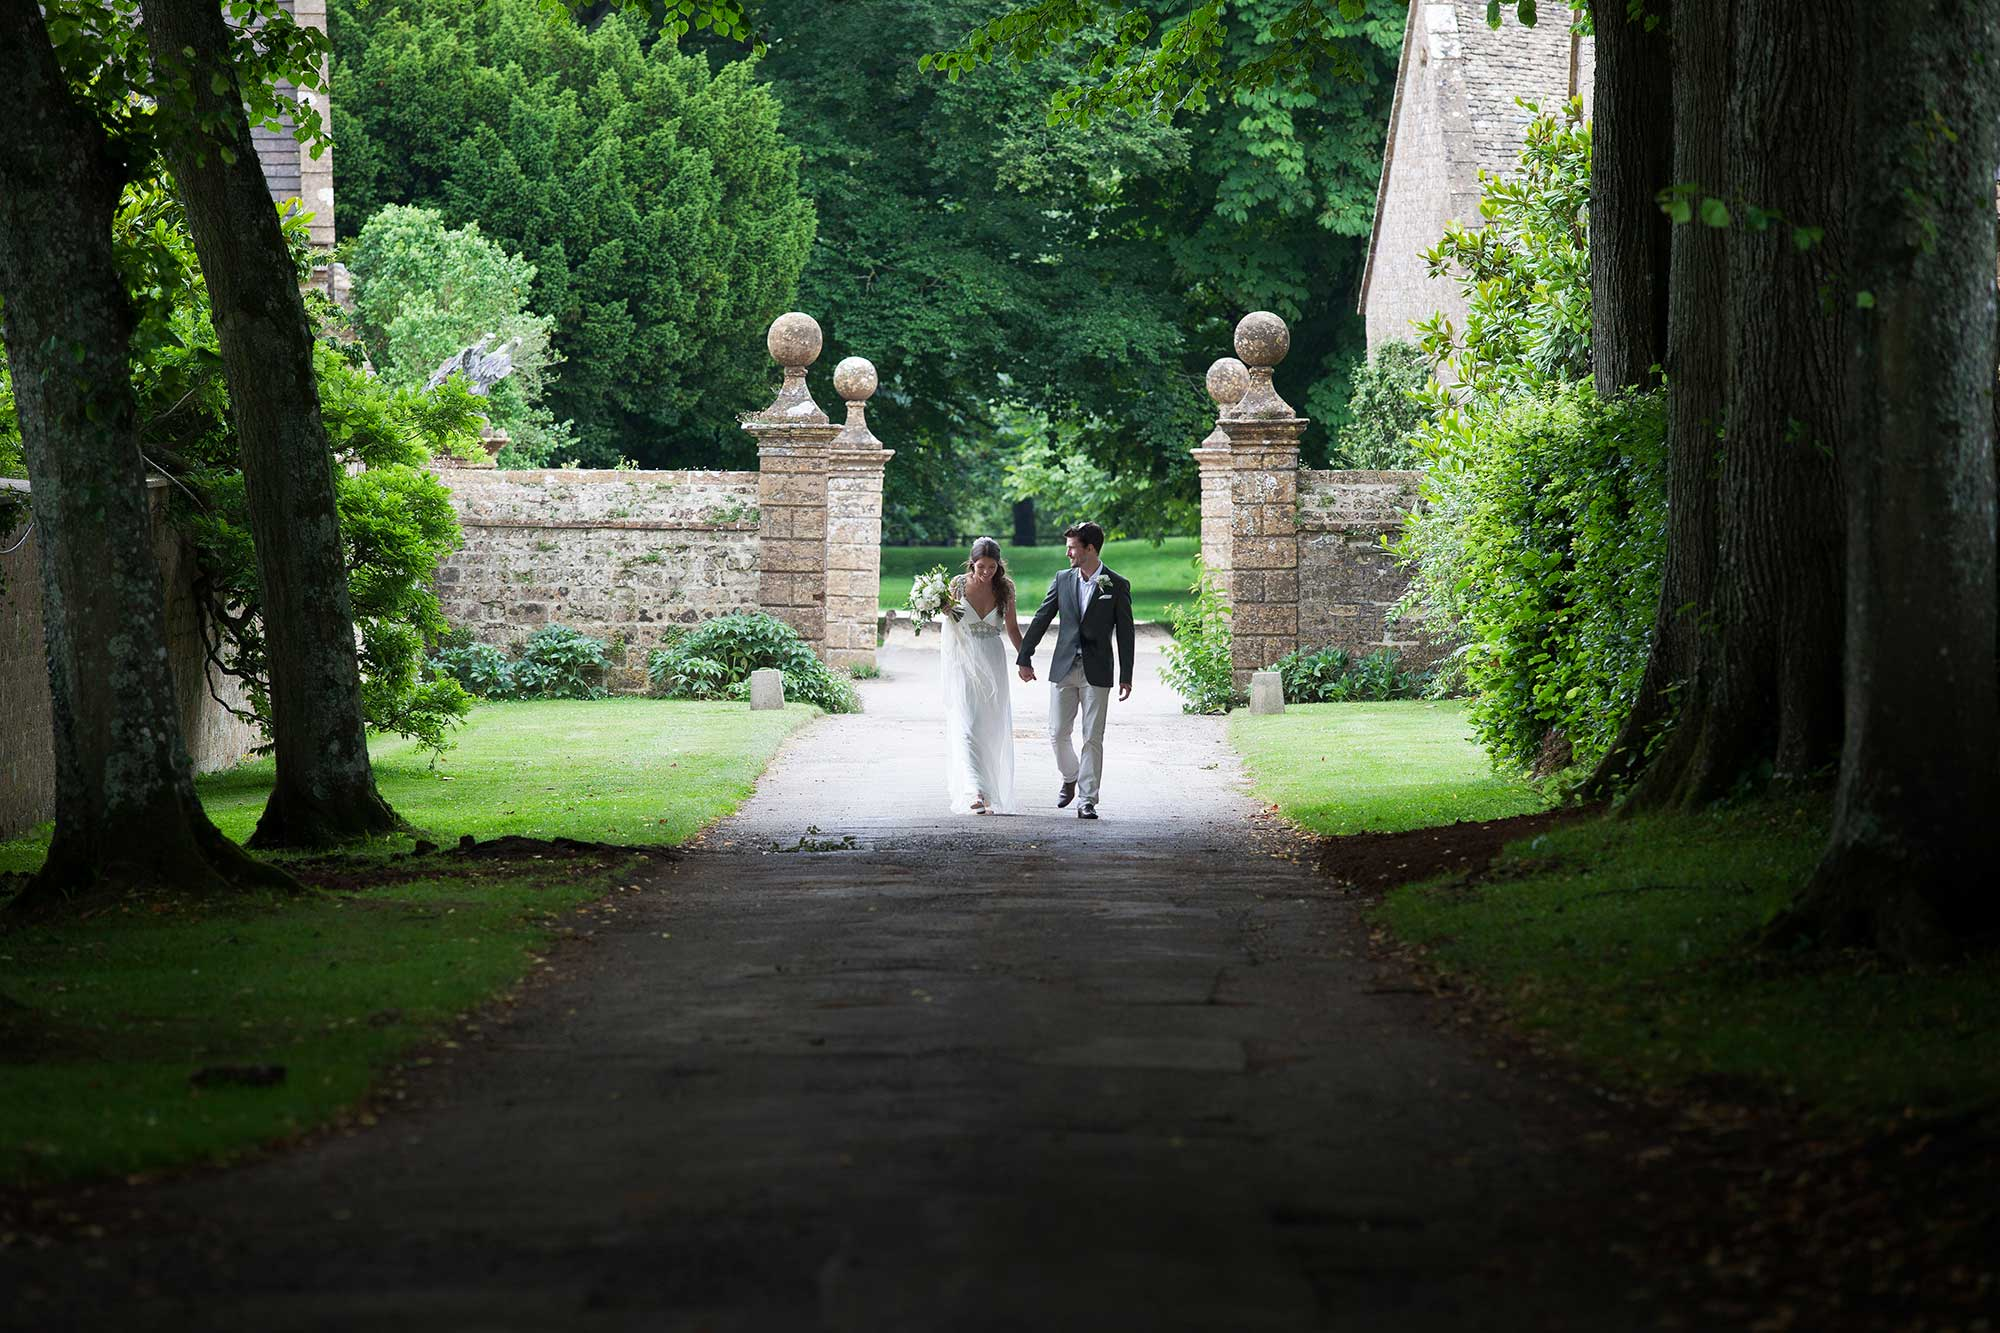 Holly and Calen's wedding at Mapperton House